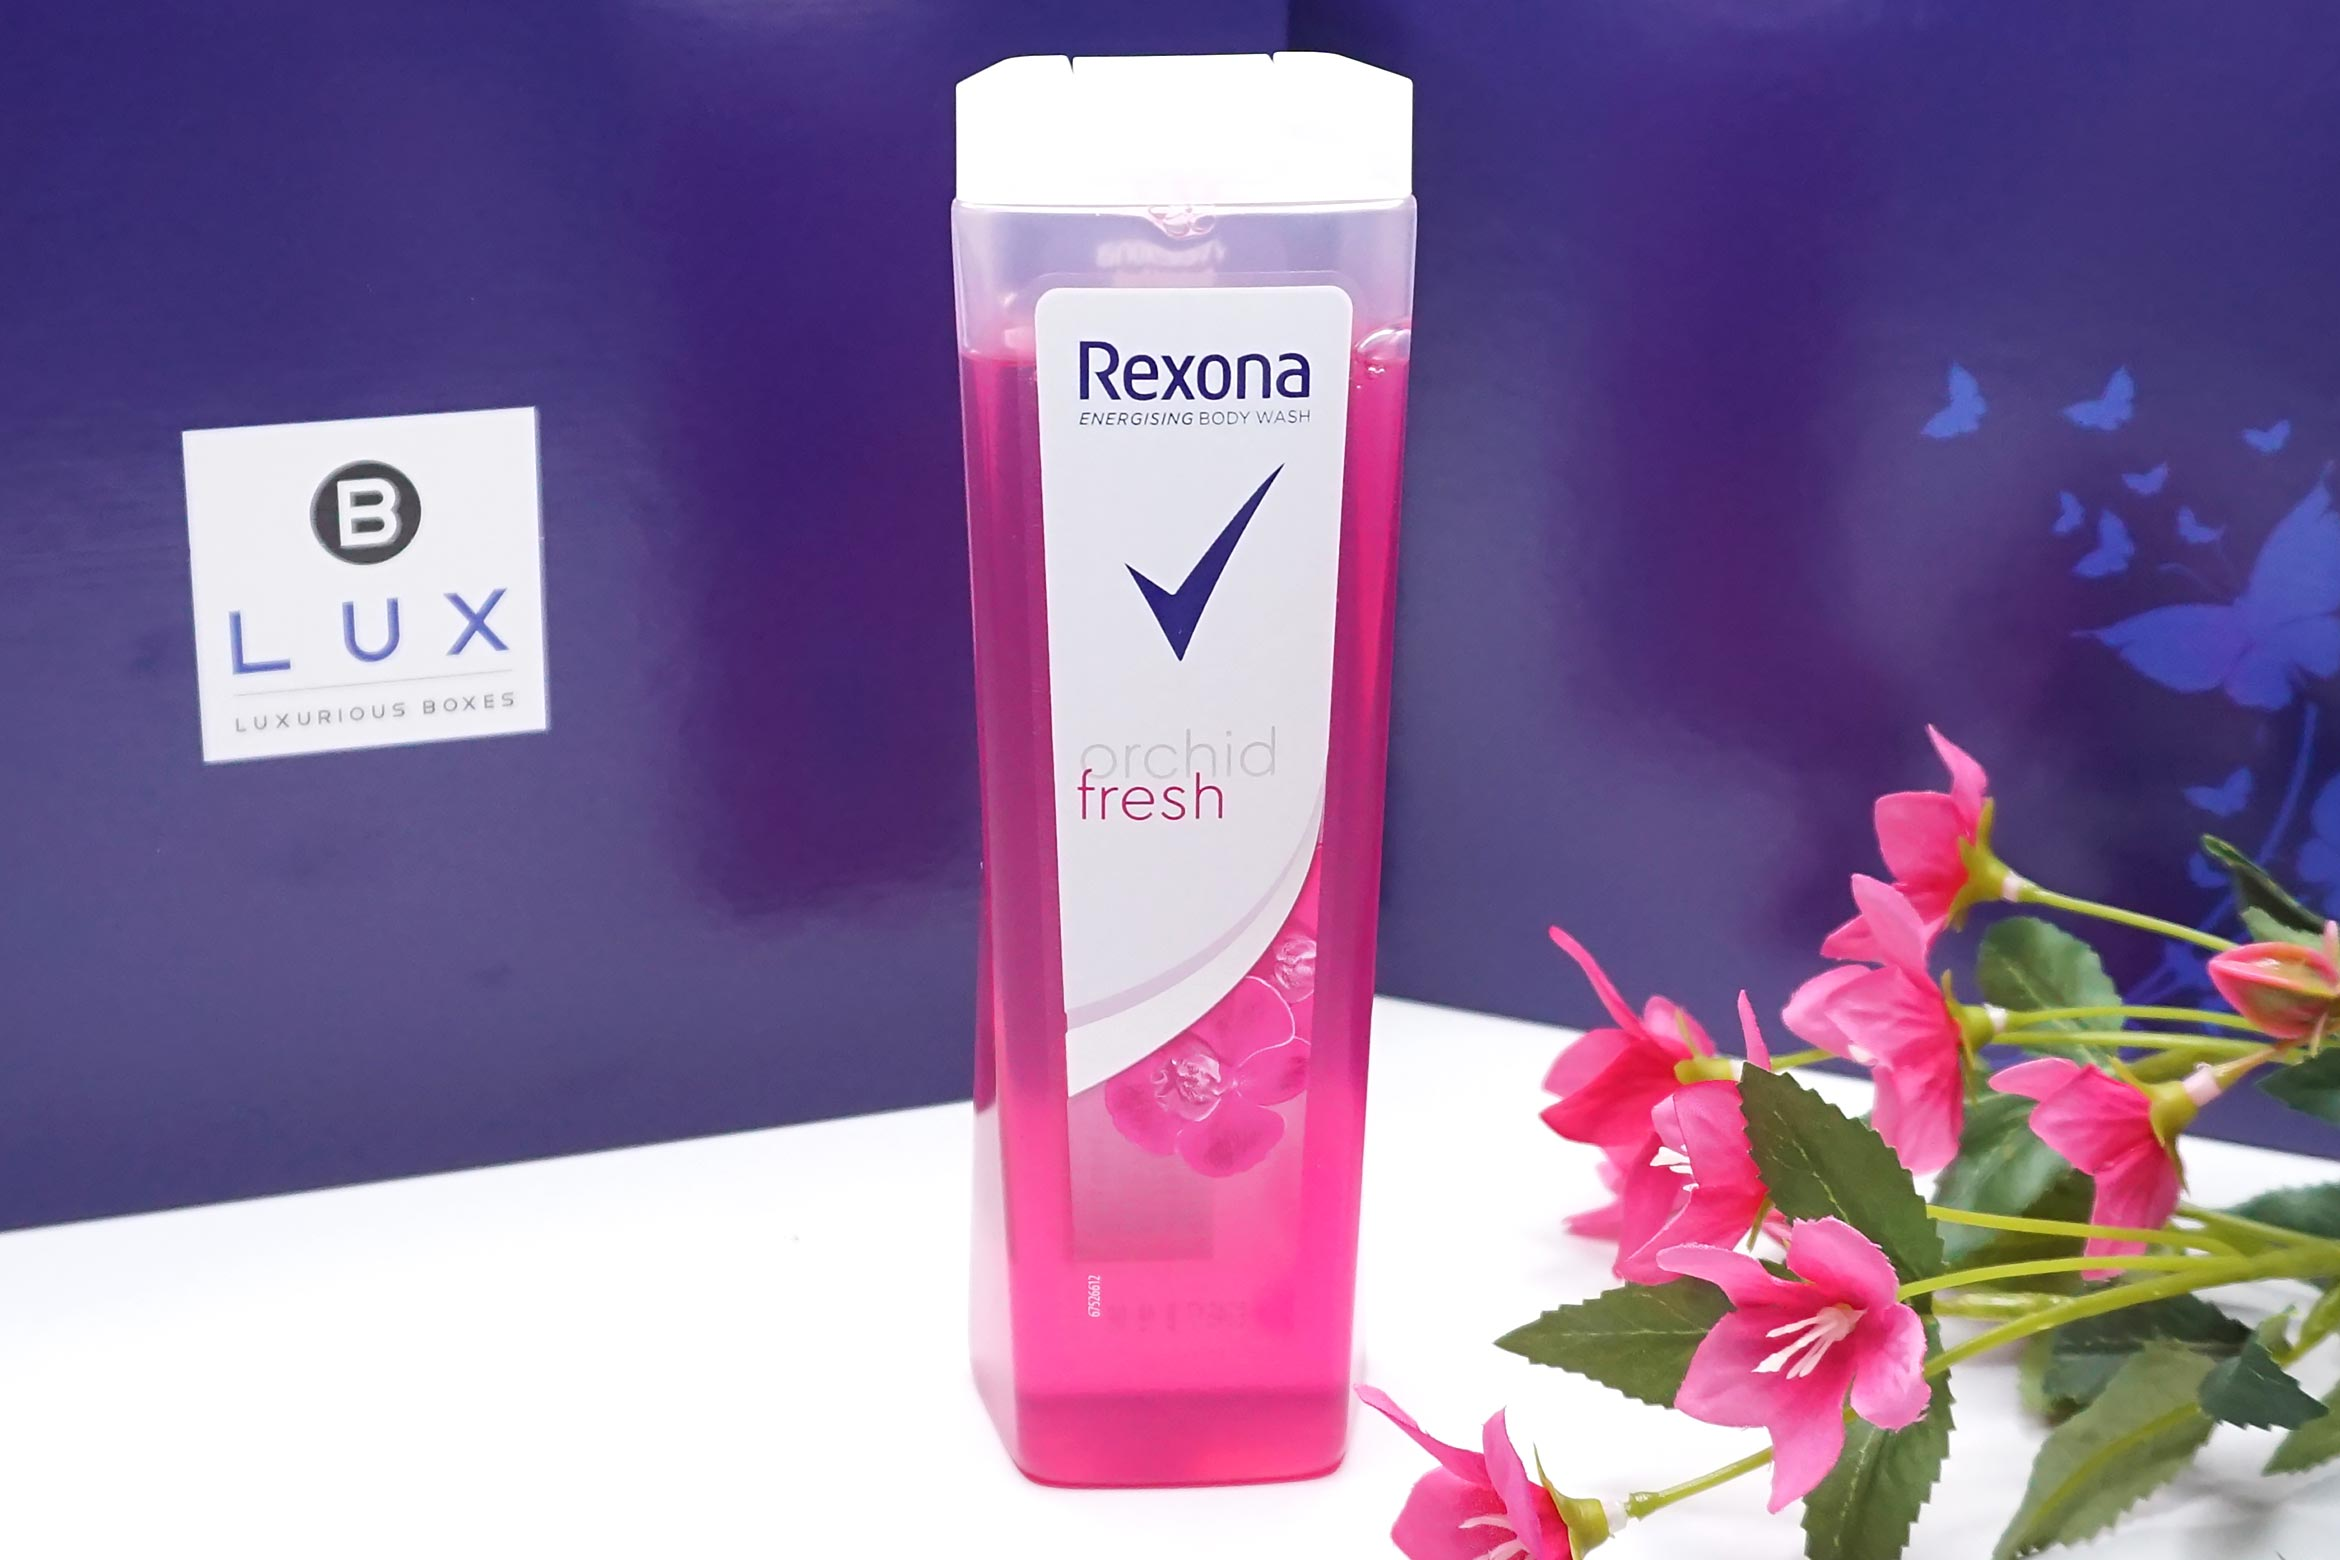 BLUX-box-maart-april-2019-review-rexona-orchid-fresh-douchegel